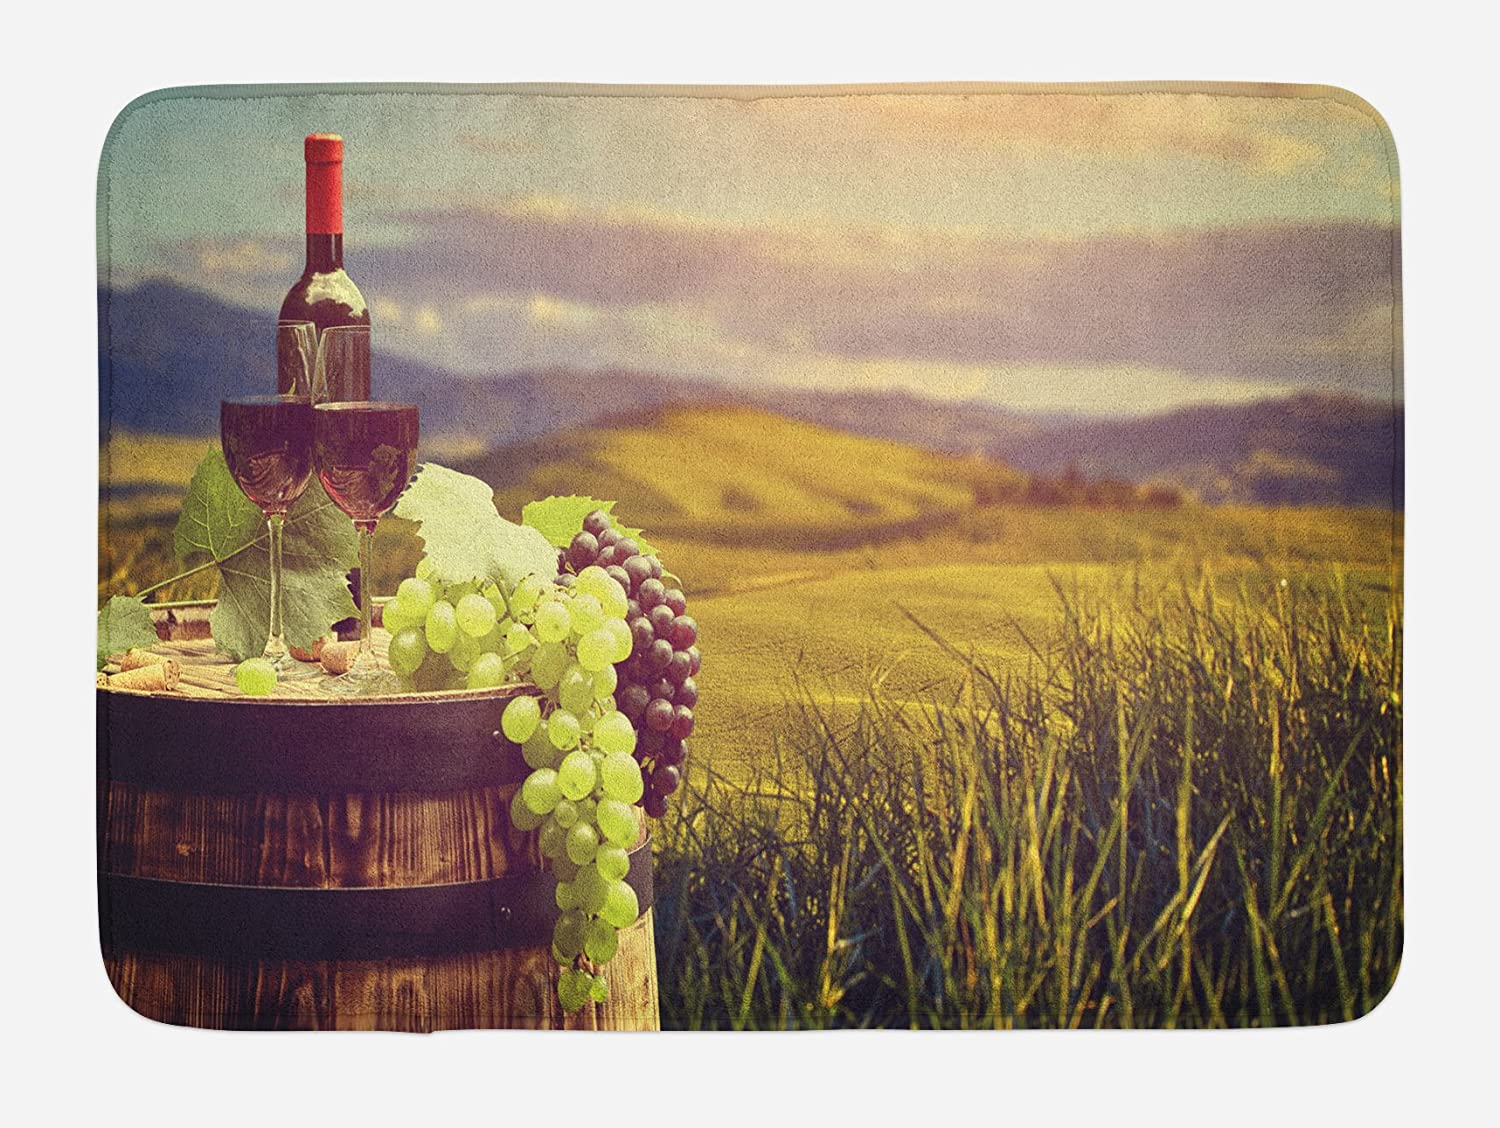 Ambesonne Wine Bath Mat, Italy Tuscany Landscape Rural Vineyard Autumn Harvest Grapes Drink Viticulture, Plush Bathroom Decor Mat with Non Slip Backing, 29.5